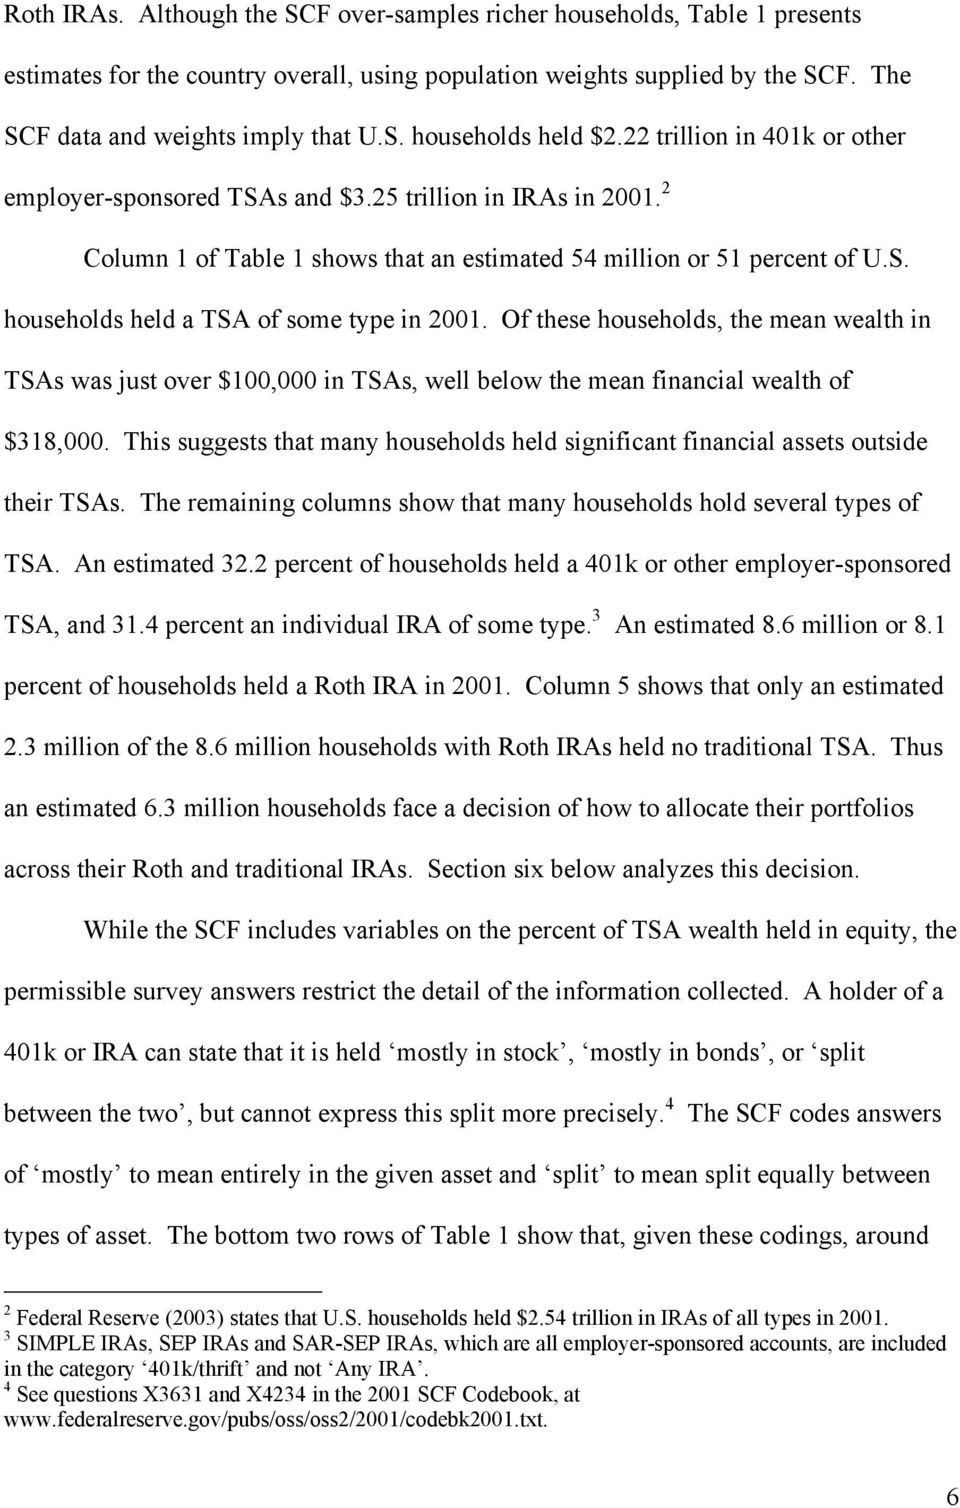 Of these households, the mean wealth in TSAs was just over $100,000 in TSAs, well below the mean financial wealth of $318,000.